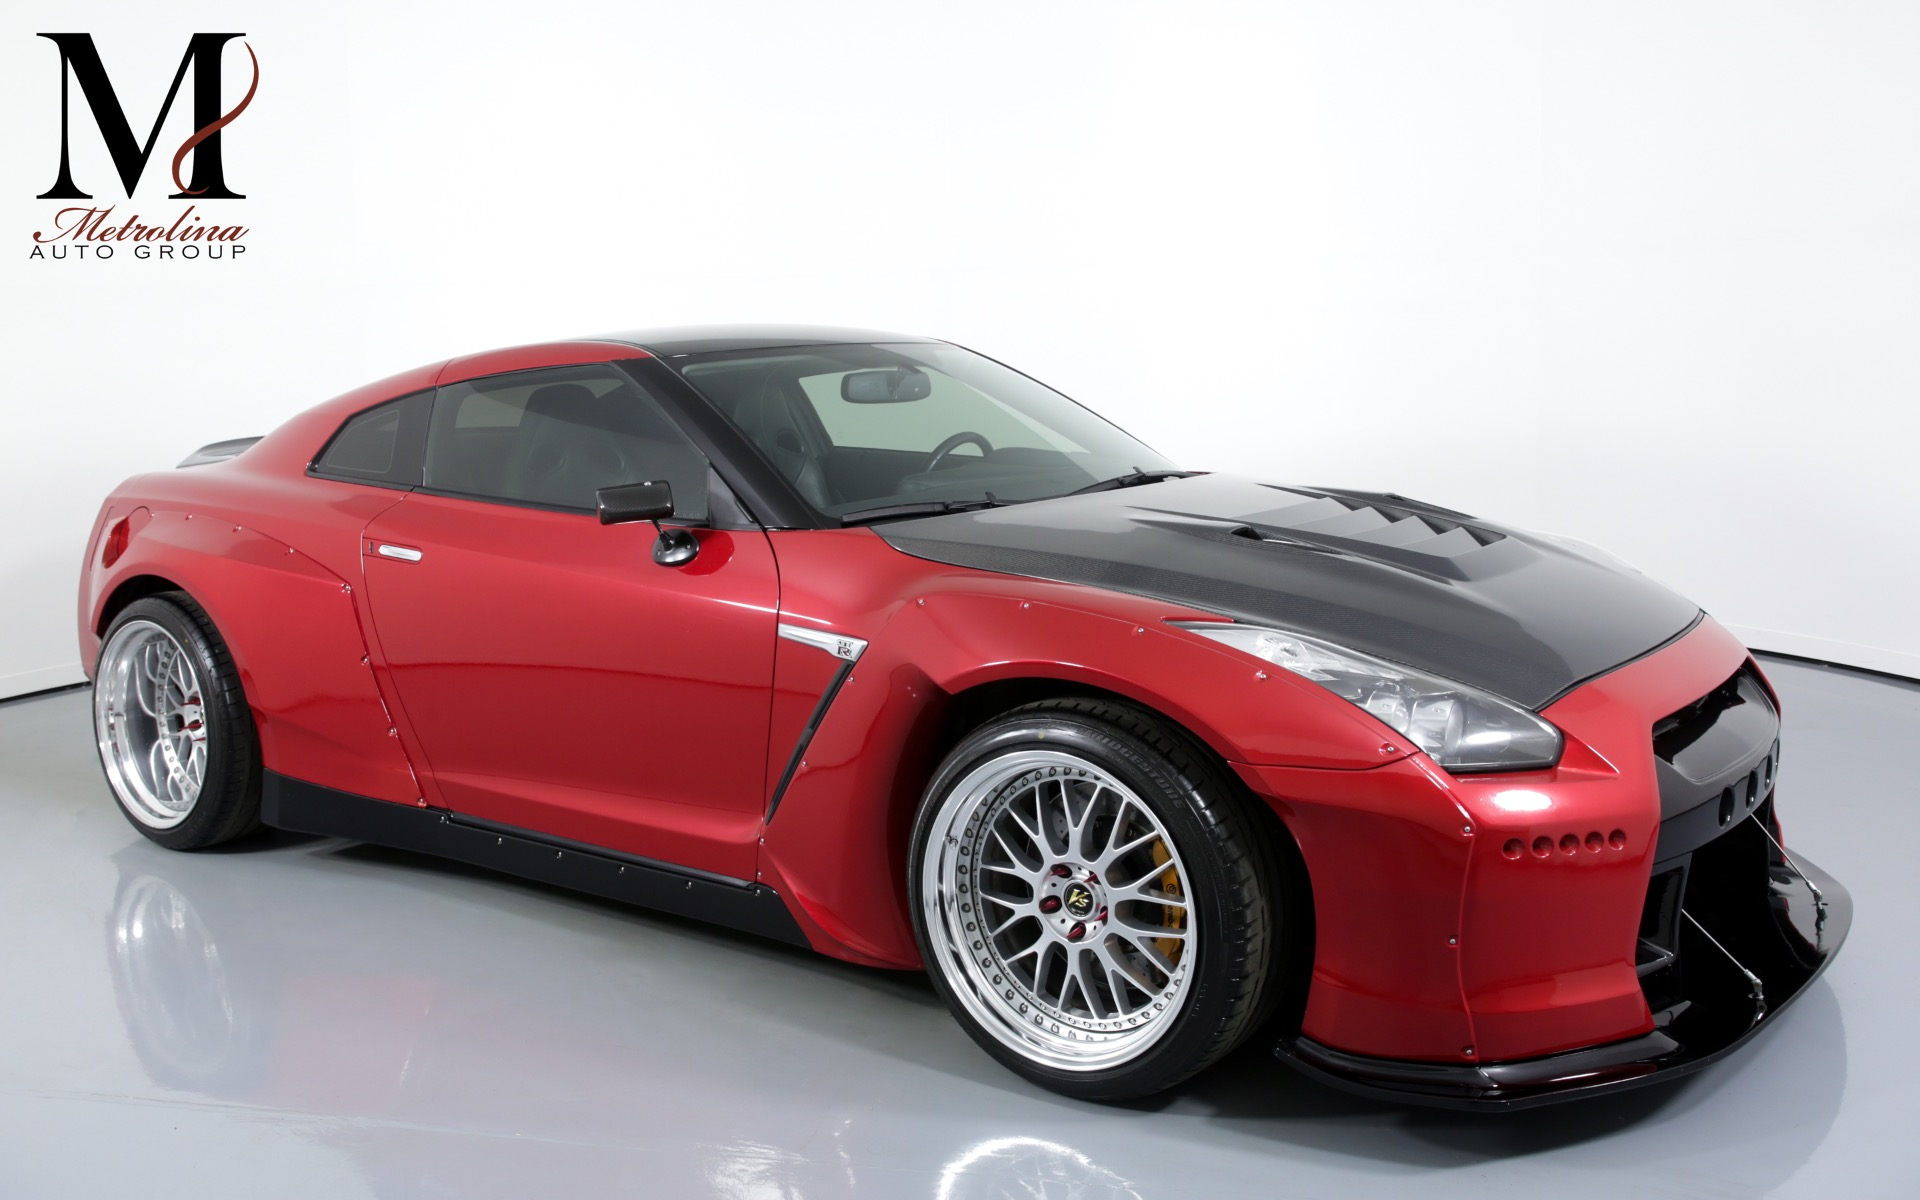 Used 2009 Nissan GT-R Premium for sale $84,996 at Metrolina Auto Group in Charlotte NC 28217 - 1